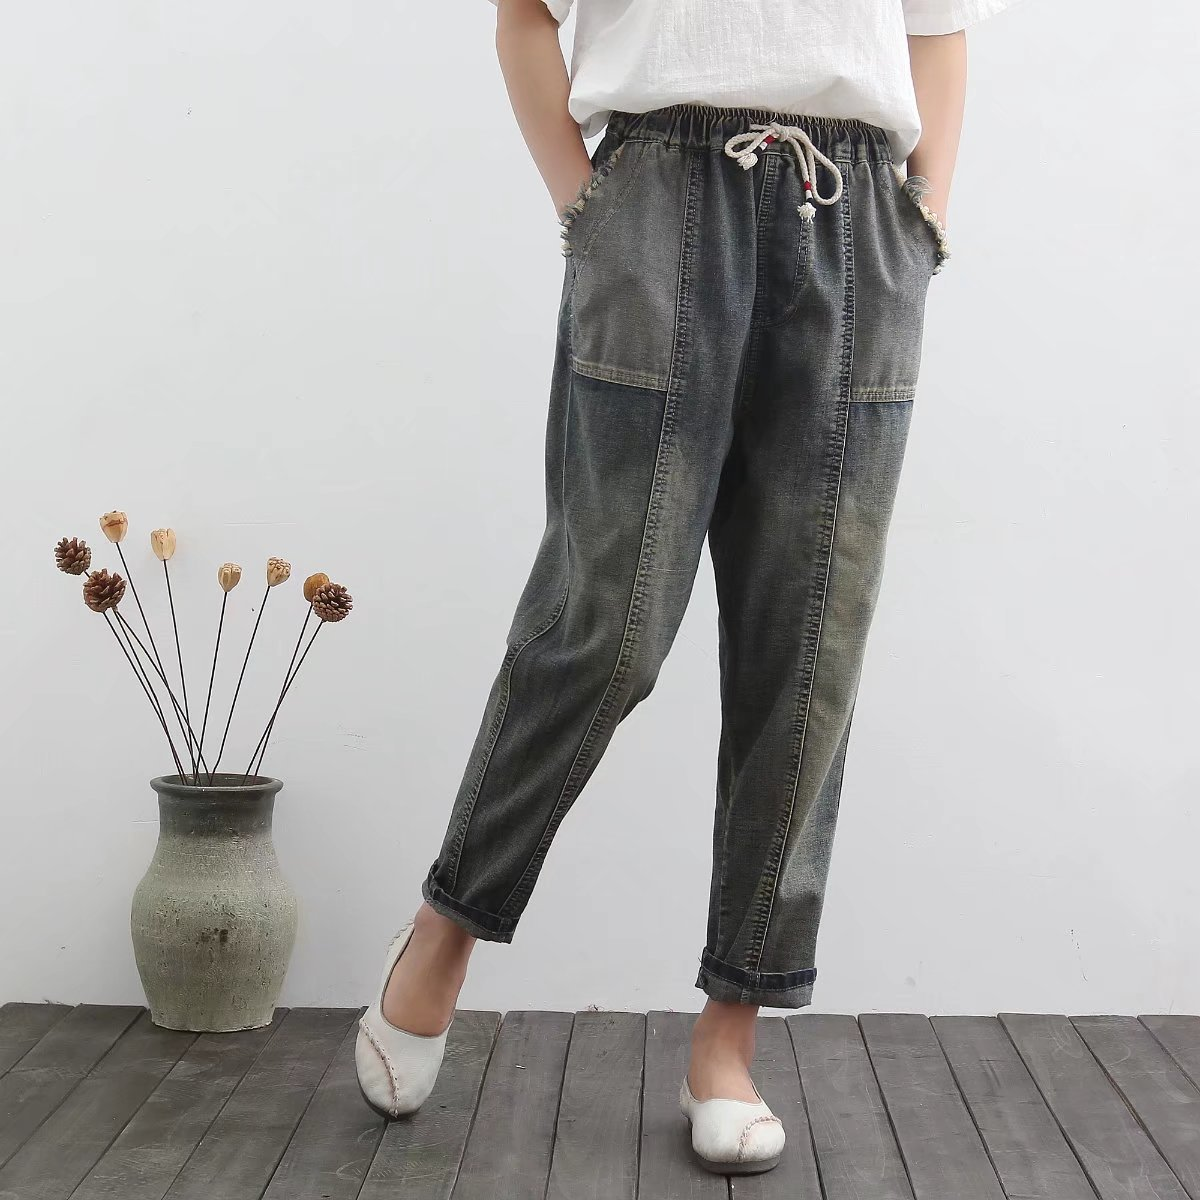 Women Spring Summer Loose Large size Jeans 2017 Elastic Waist Denim Trousers High Quality Pockets Spliced New Denim Pants plus size pants the spring new jeans pants suspenders ladies denim trousers elastic braces bib overalls for women dungarees